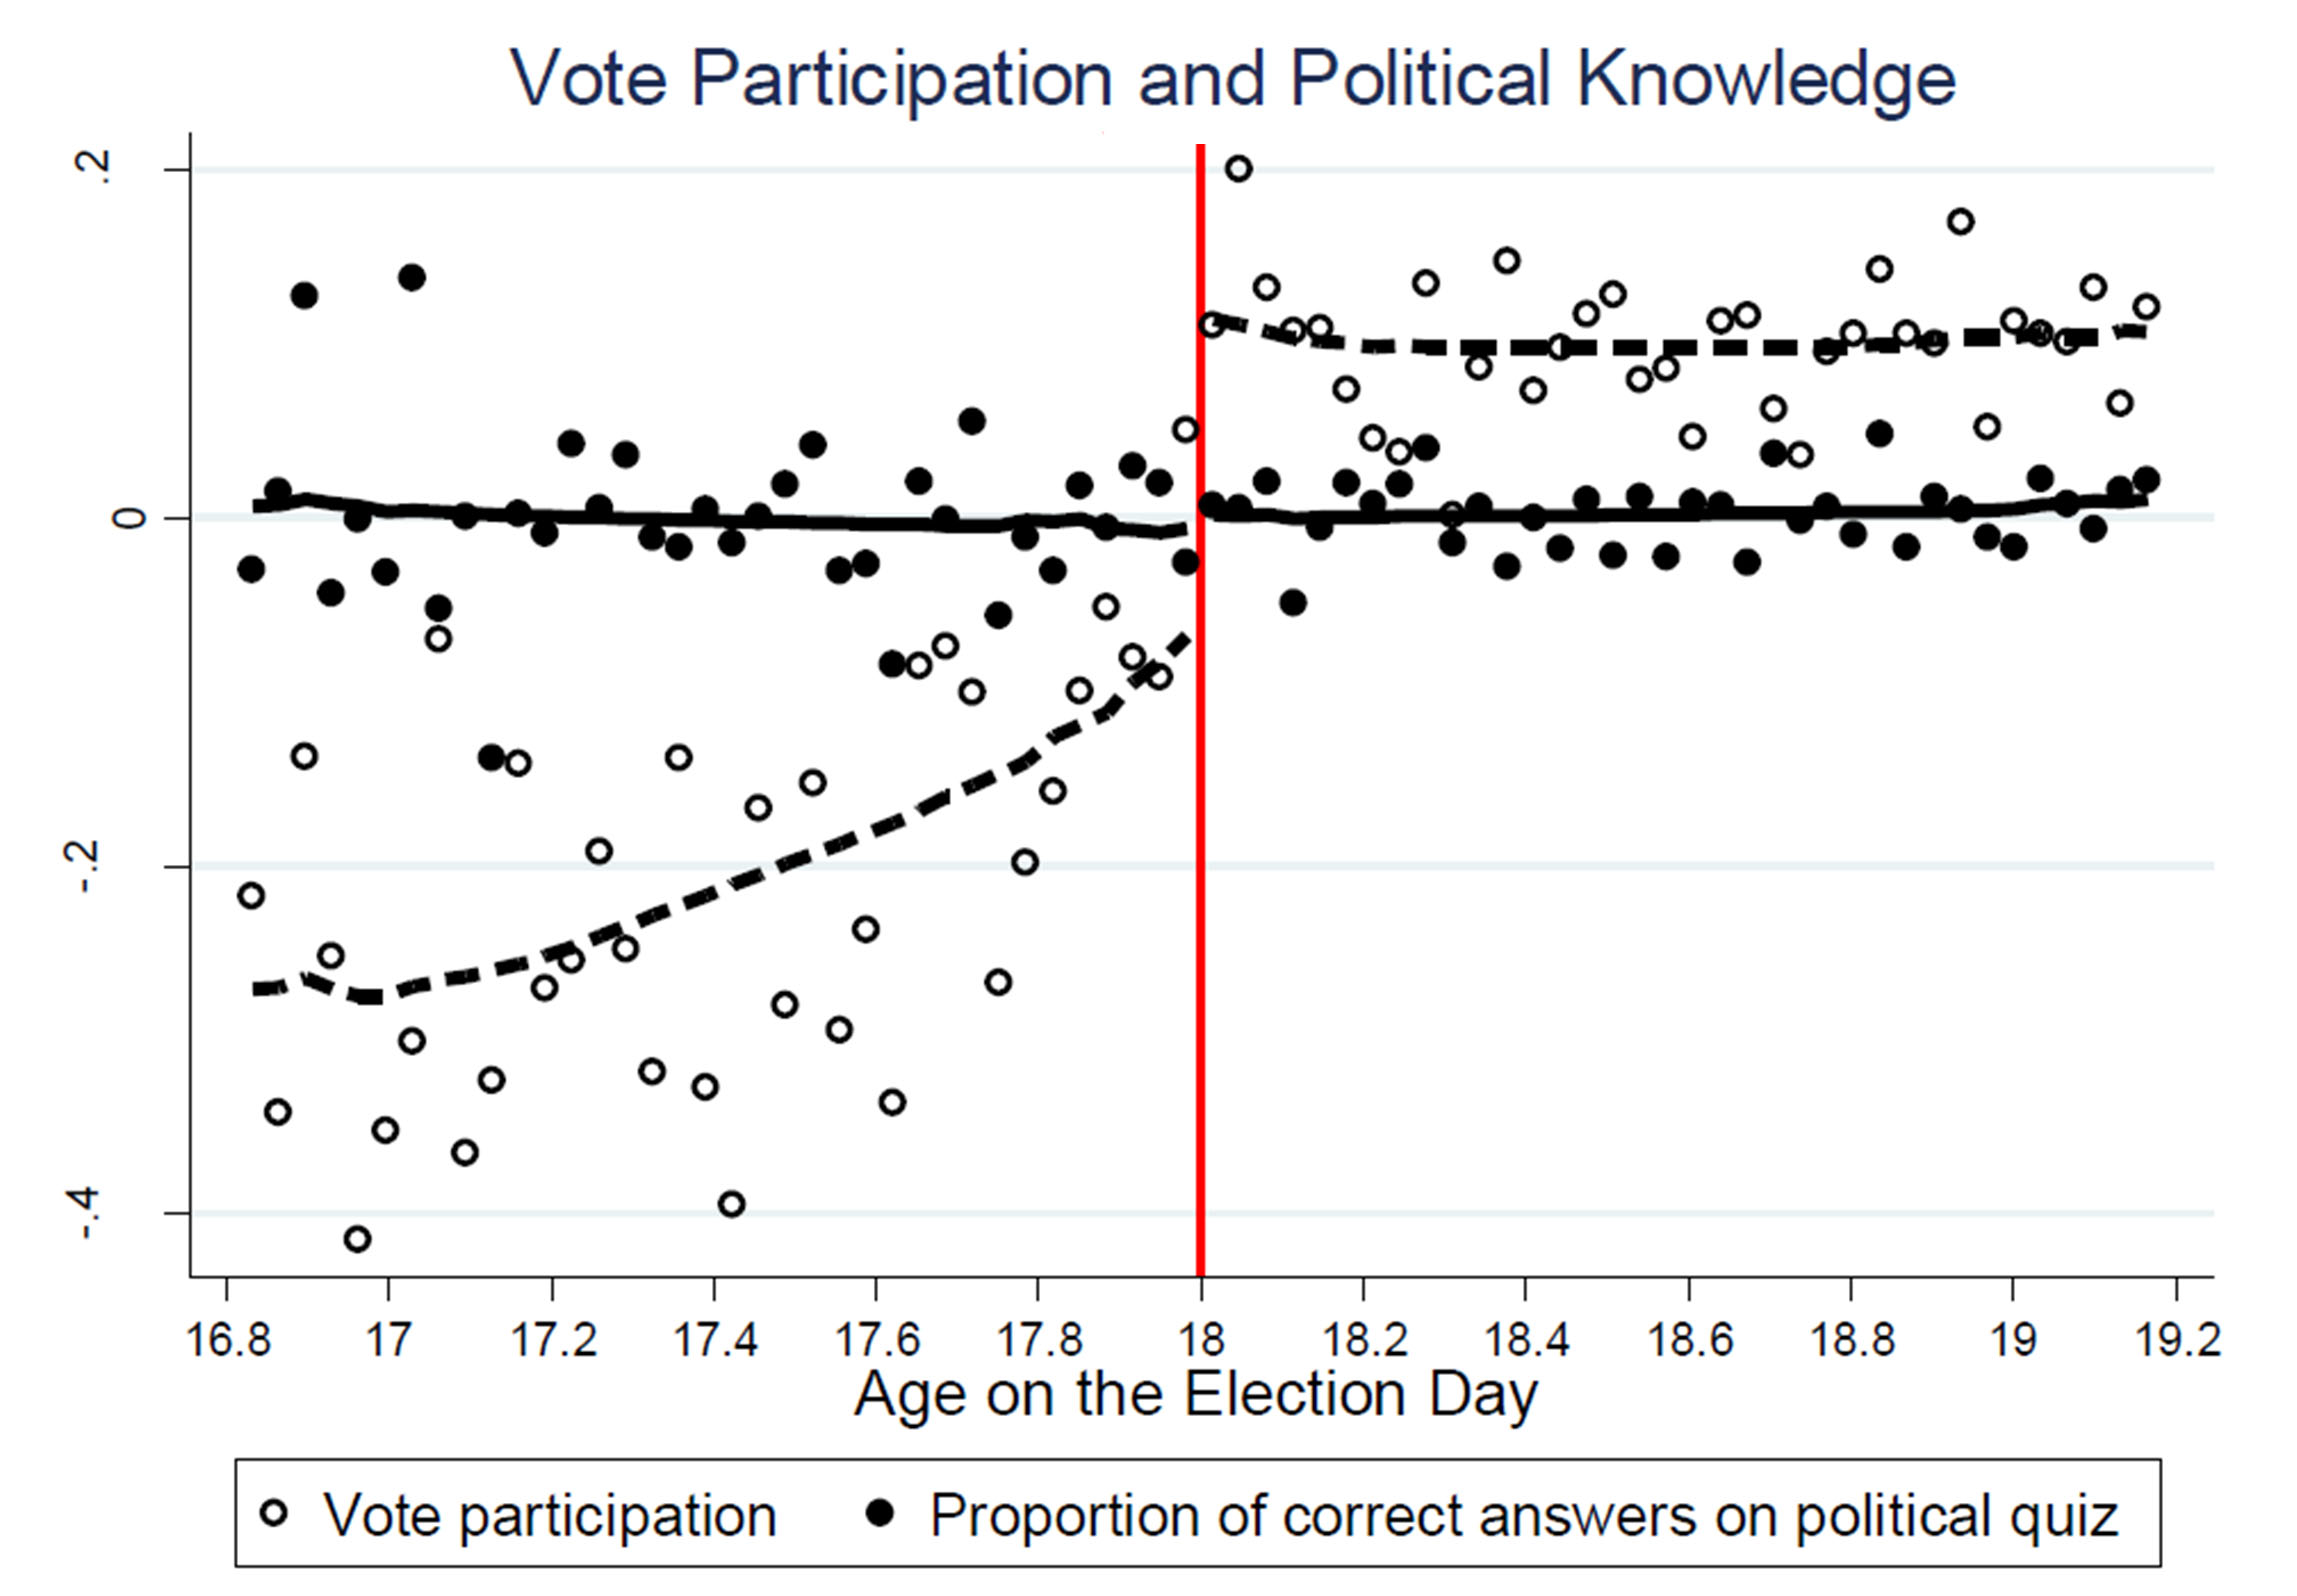 A chart showing vote participation and political knowledge